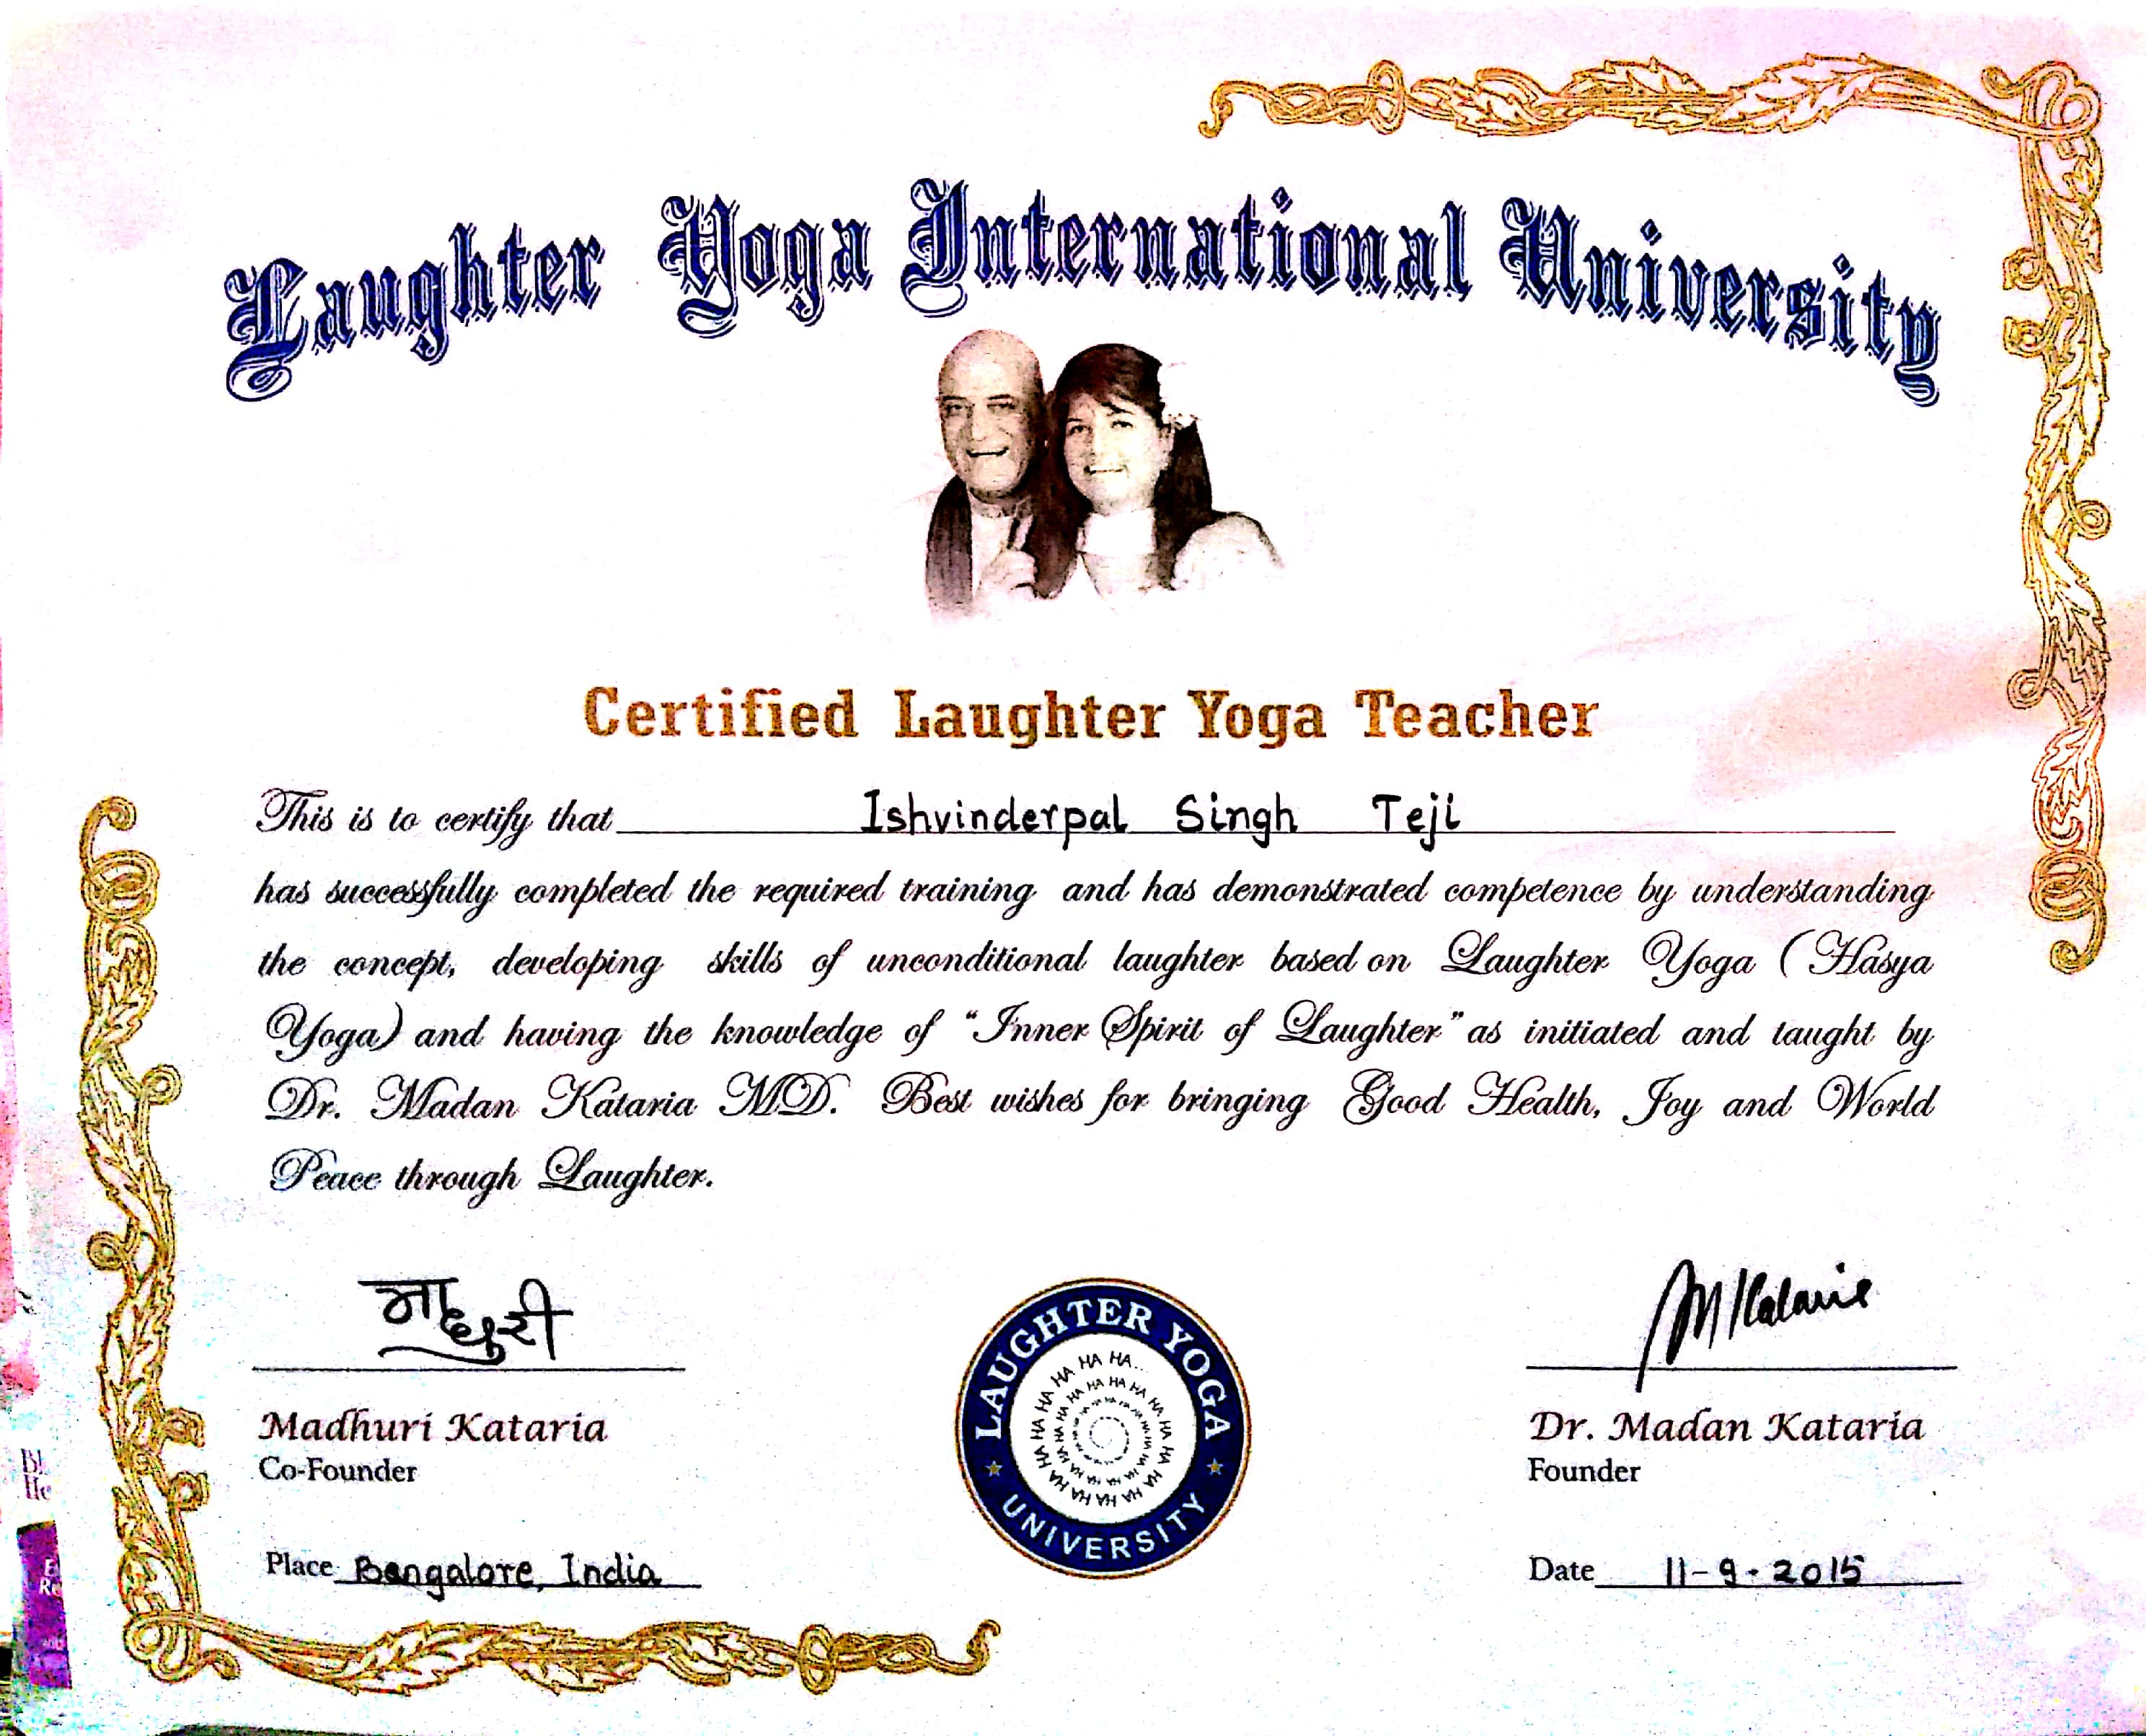 ips-laughteryoga-certificate